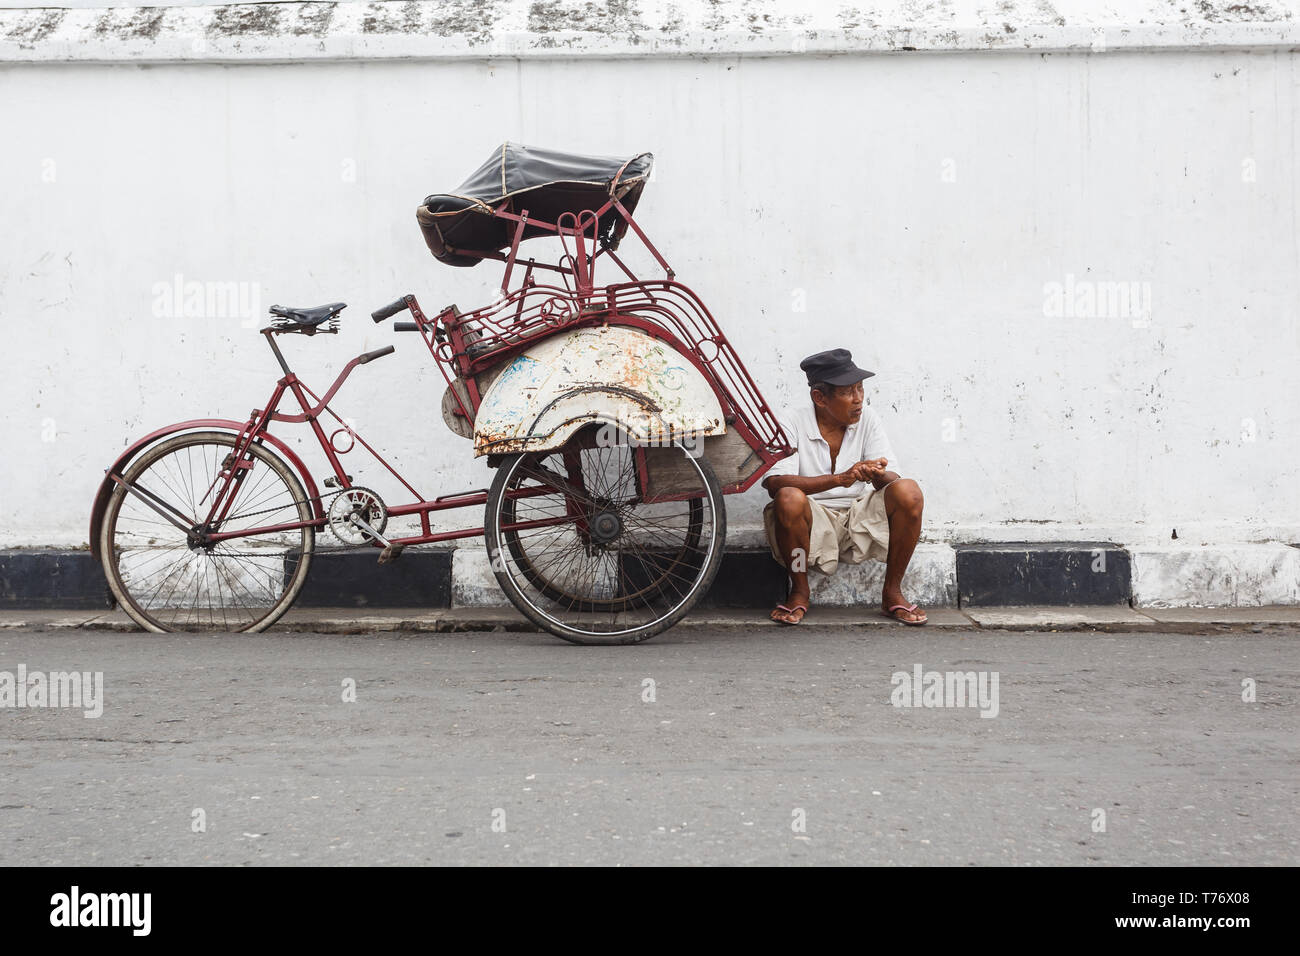 Driver of rickshaw bicycle taxi, sits on curb in street